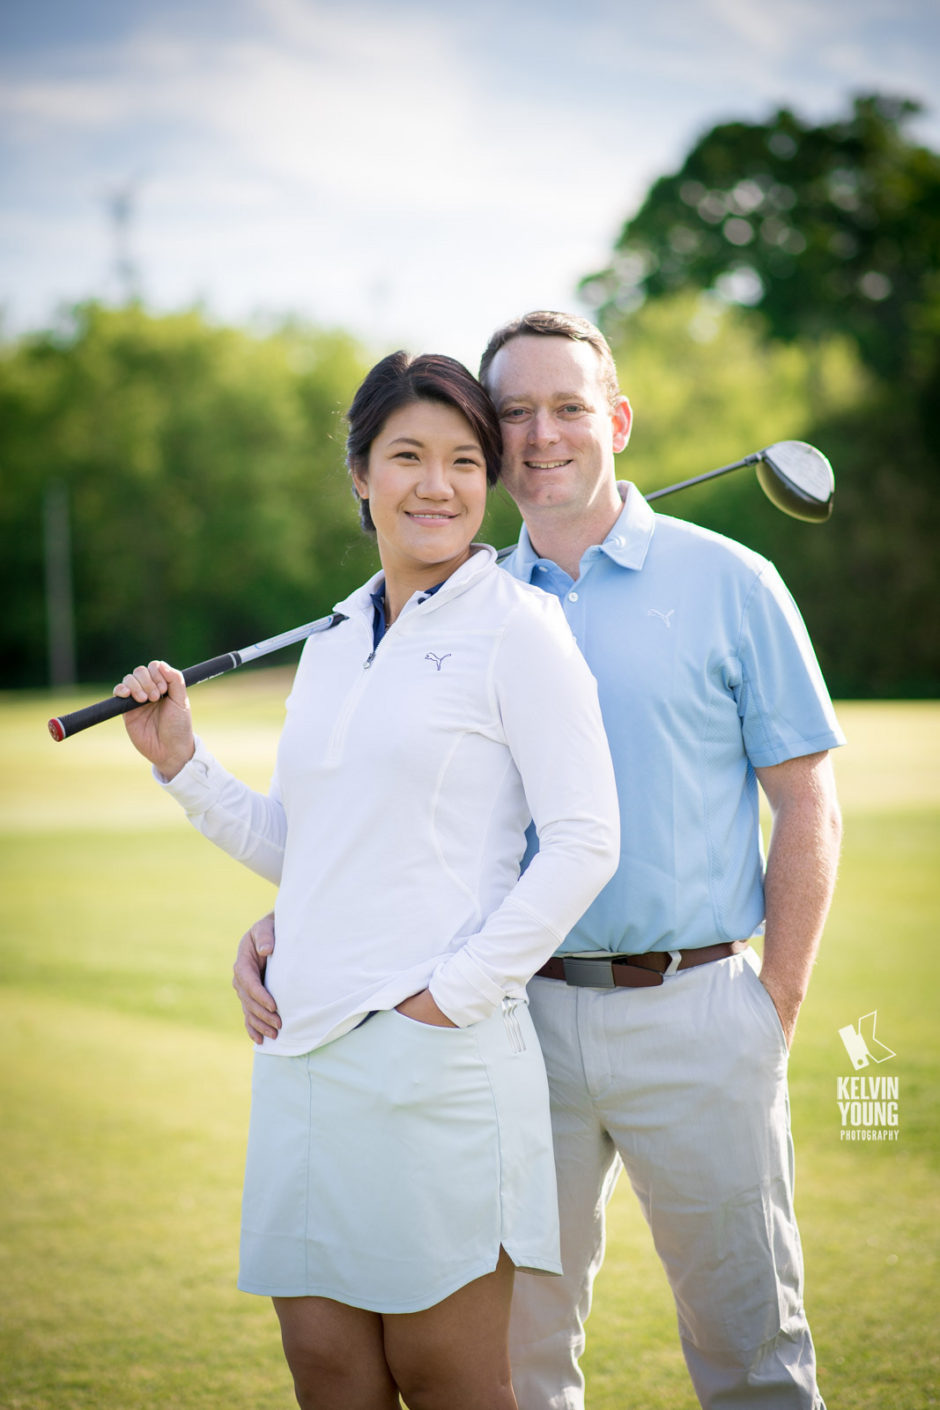 KYP16-Sabrina_Chris_Golf_Course_Engagement-006